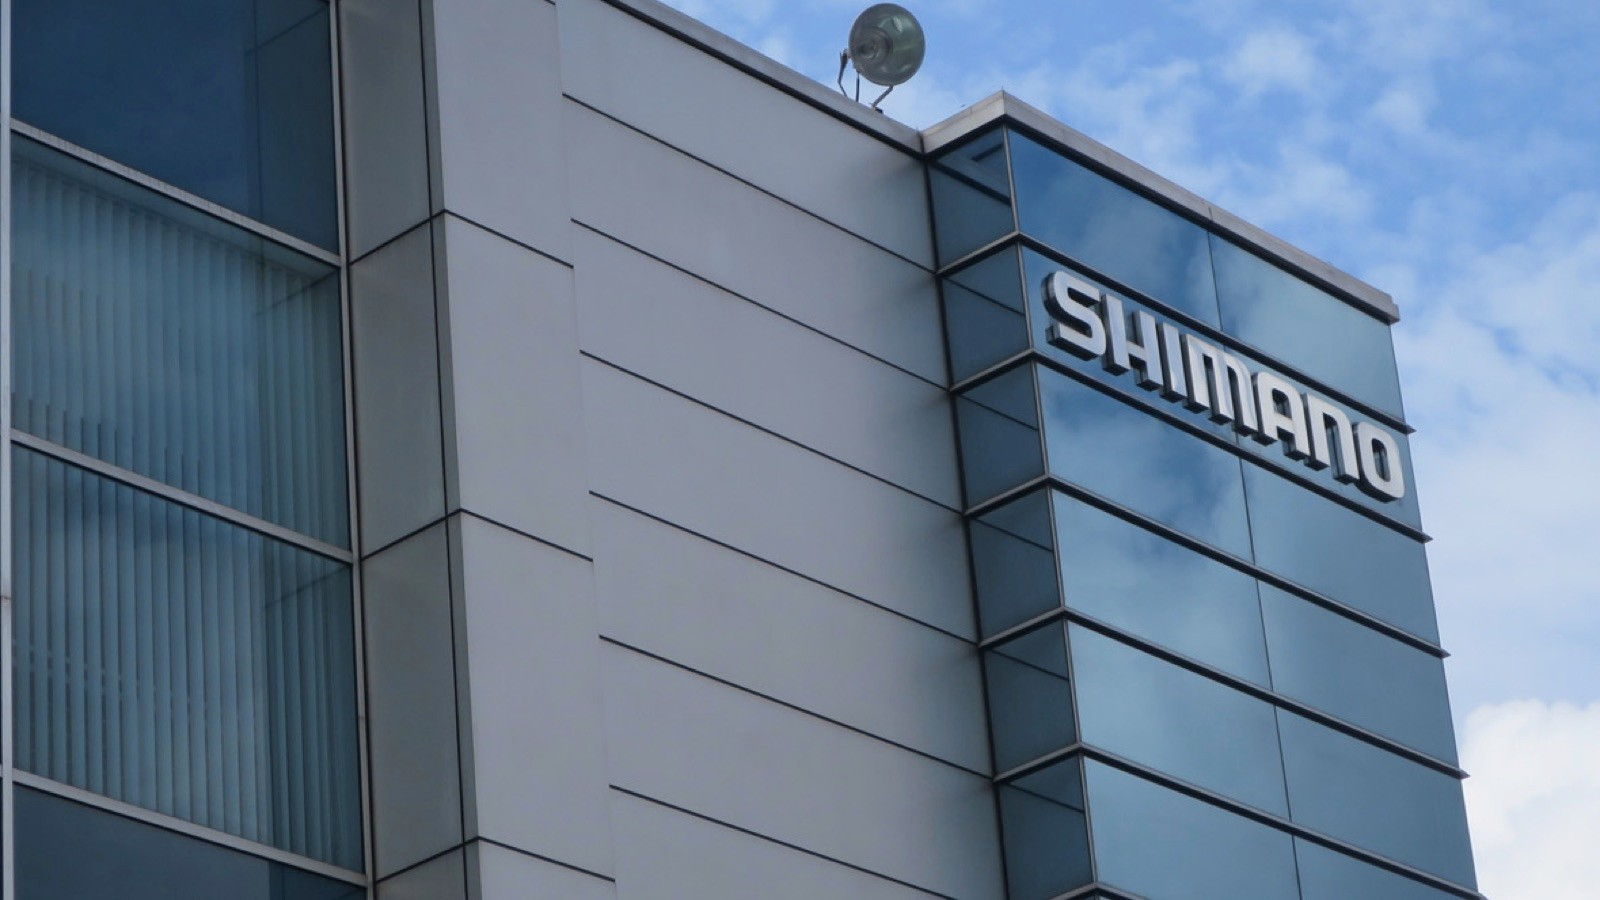 Wireless shifting, 105-level Di2, 12speed shifting… All these things and more are being explored within this building